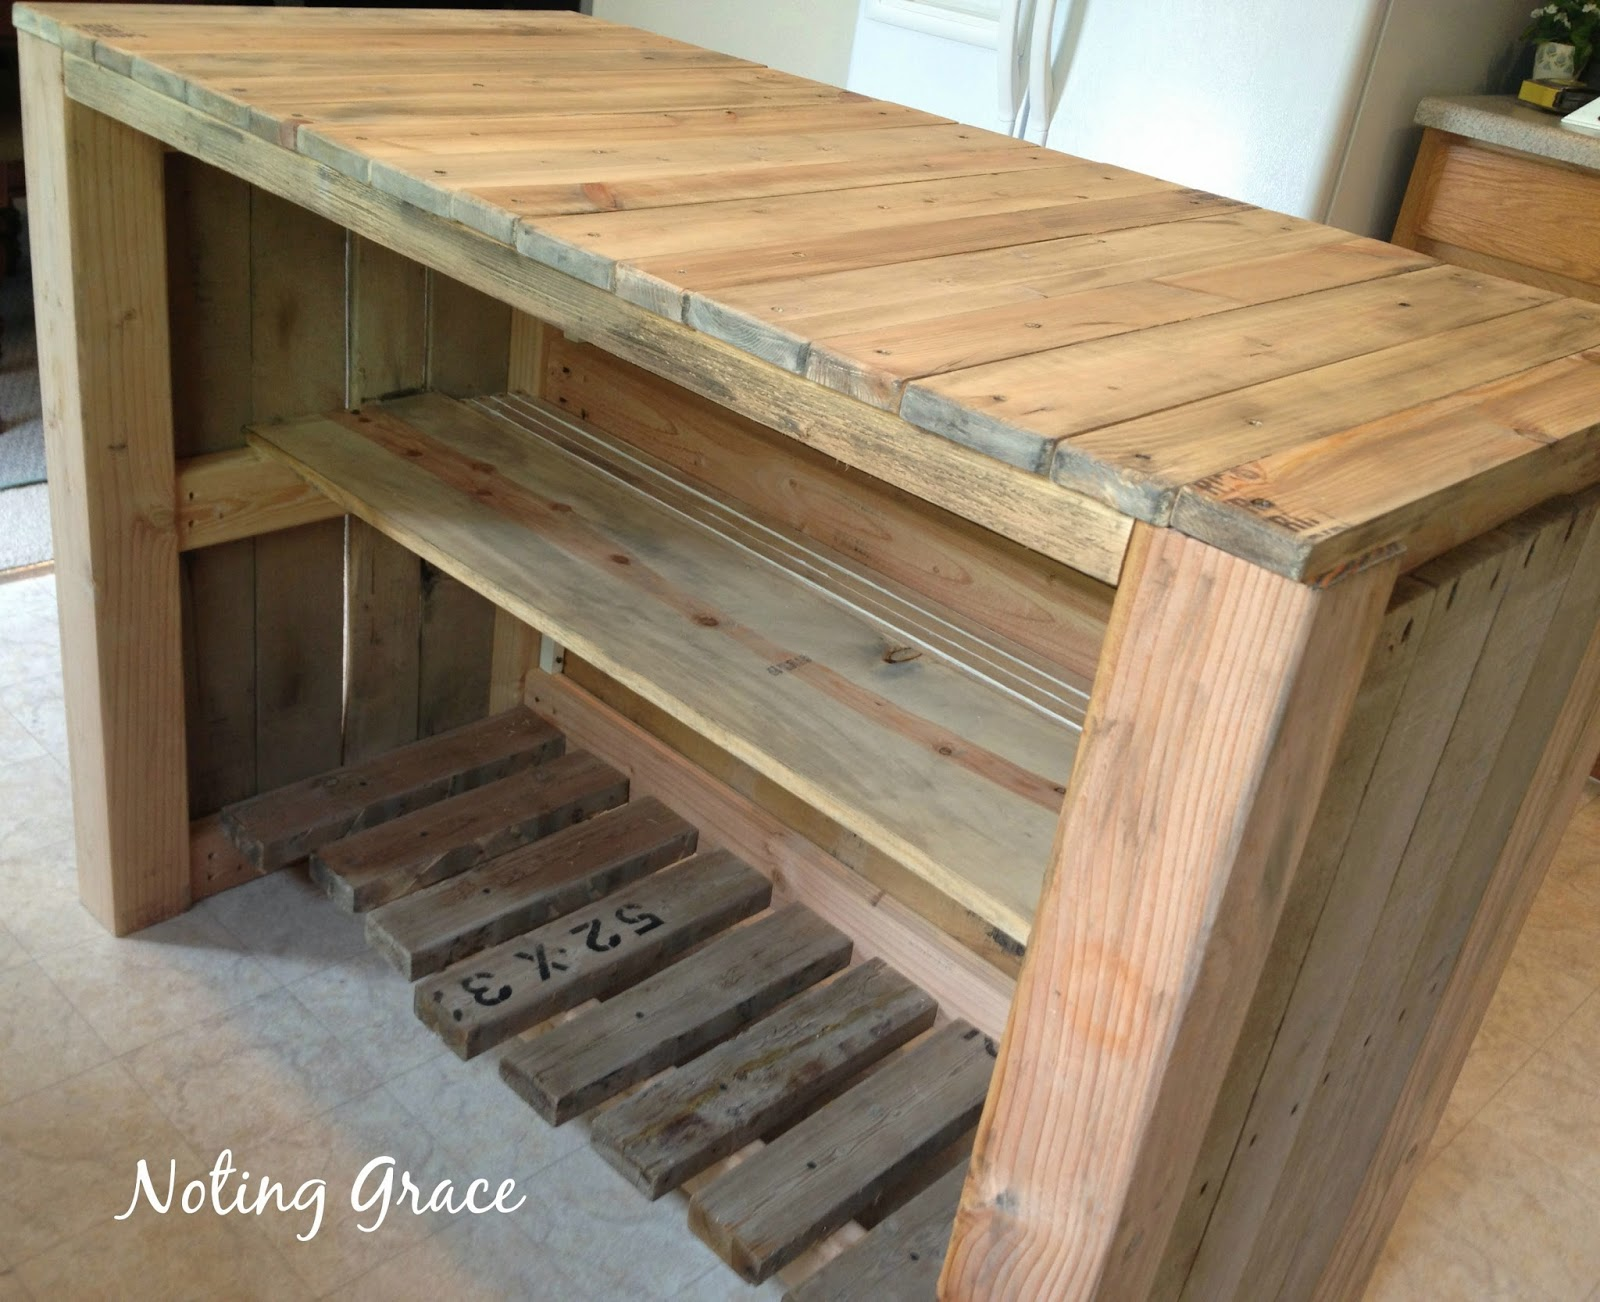 Noting Grace Diy Pallet Kitchen Island For Less Than 50